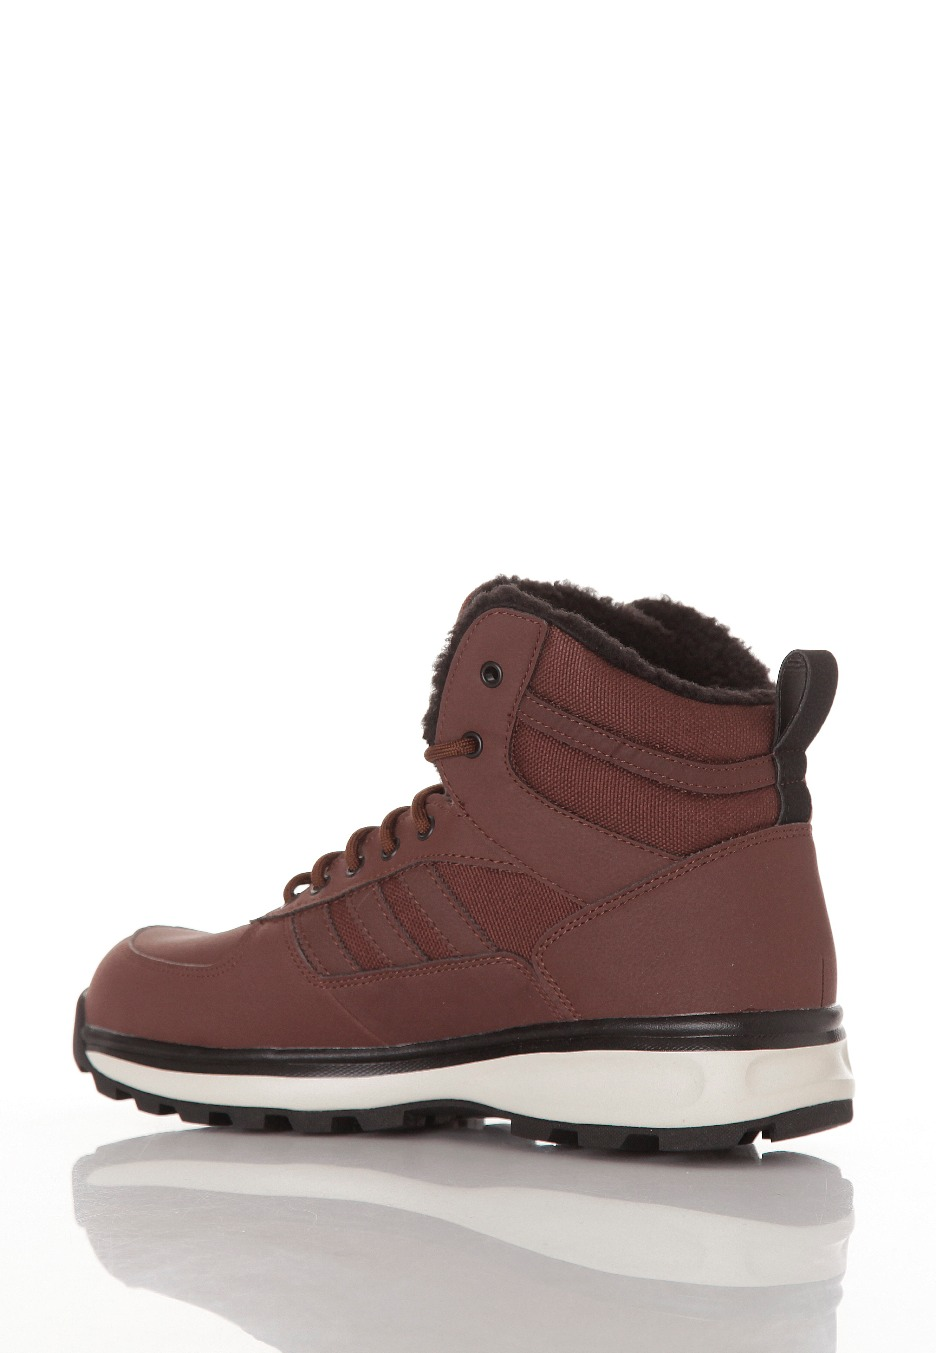 super popular 308b2 377de ... Adidas - Chasker Boot St Auburn St Auburn Black - Shoes ...